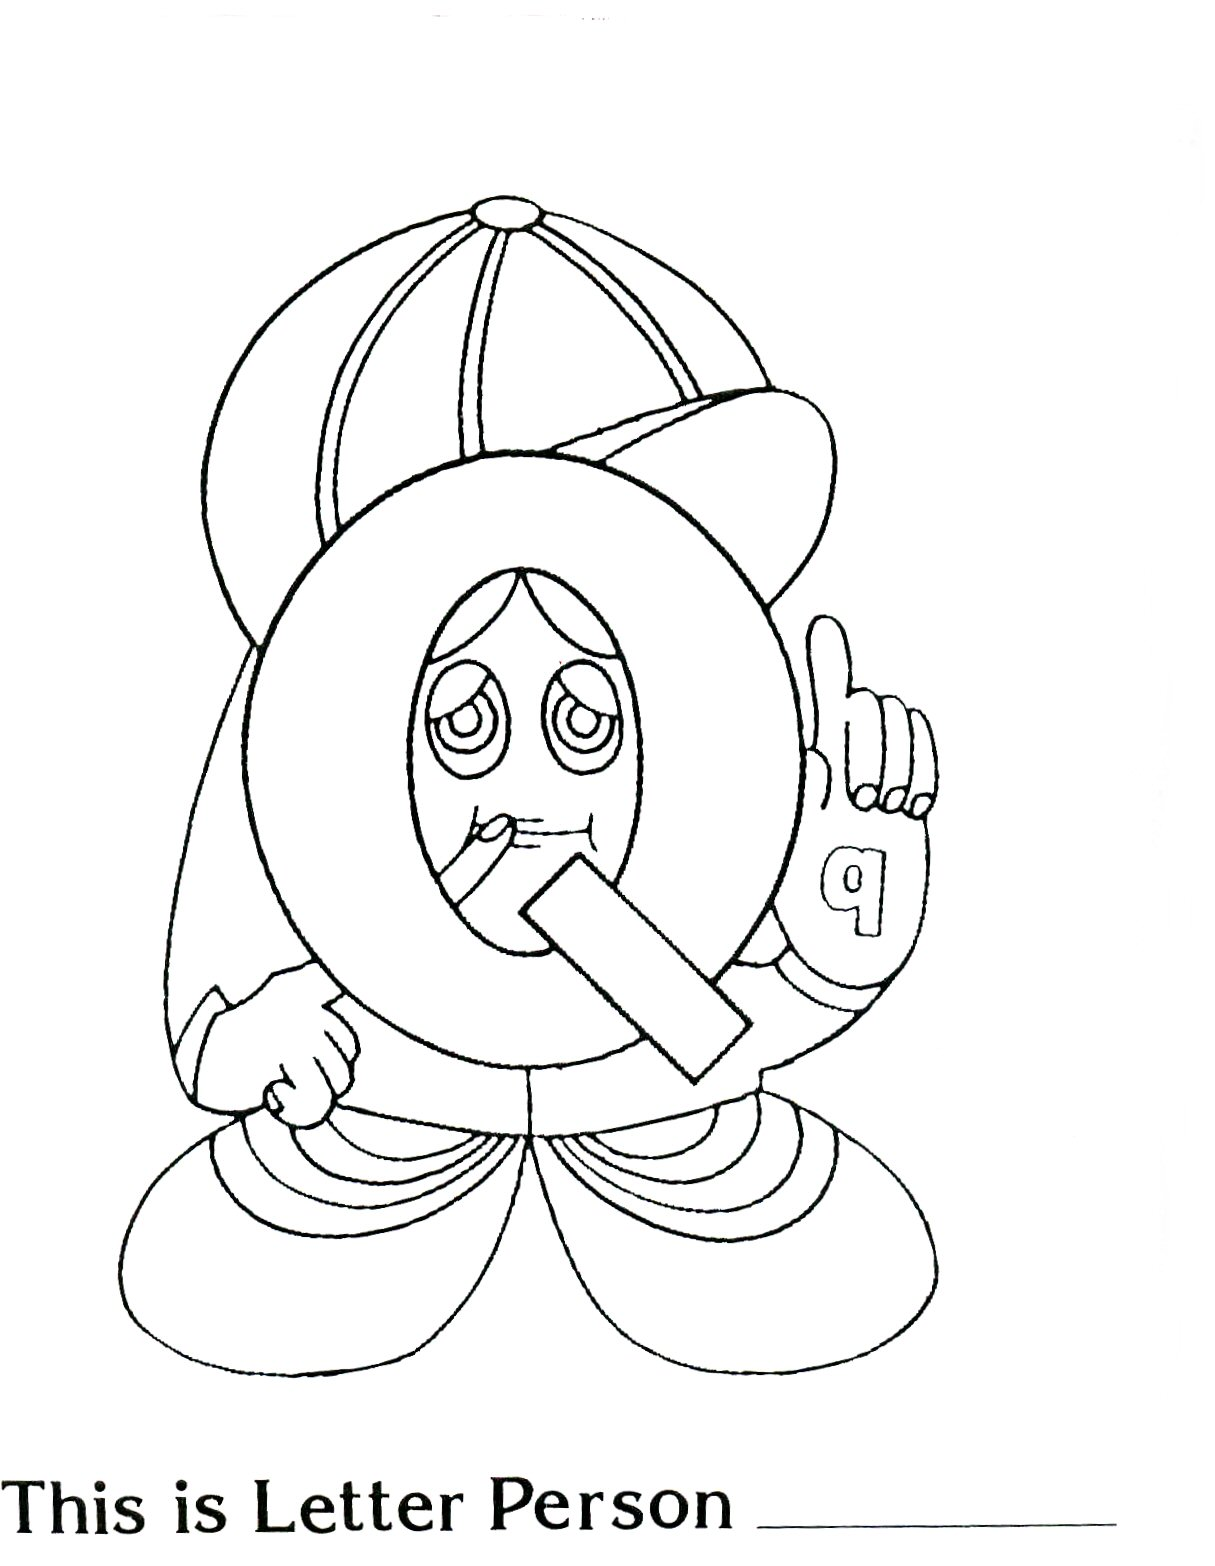 Beginnings preschool letter person q printable coloring page